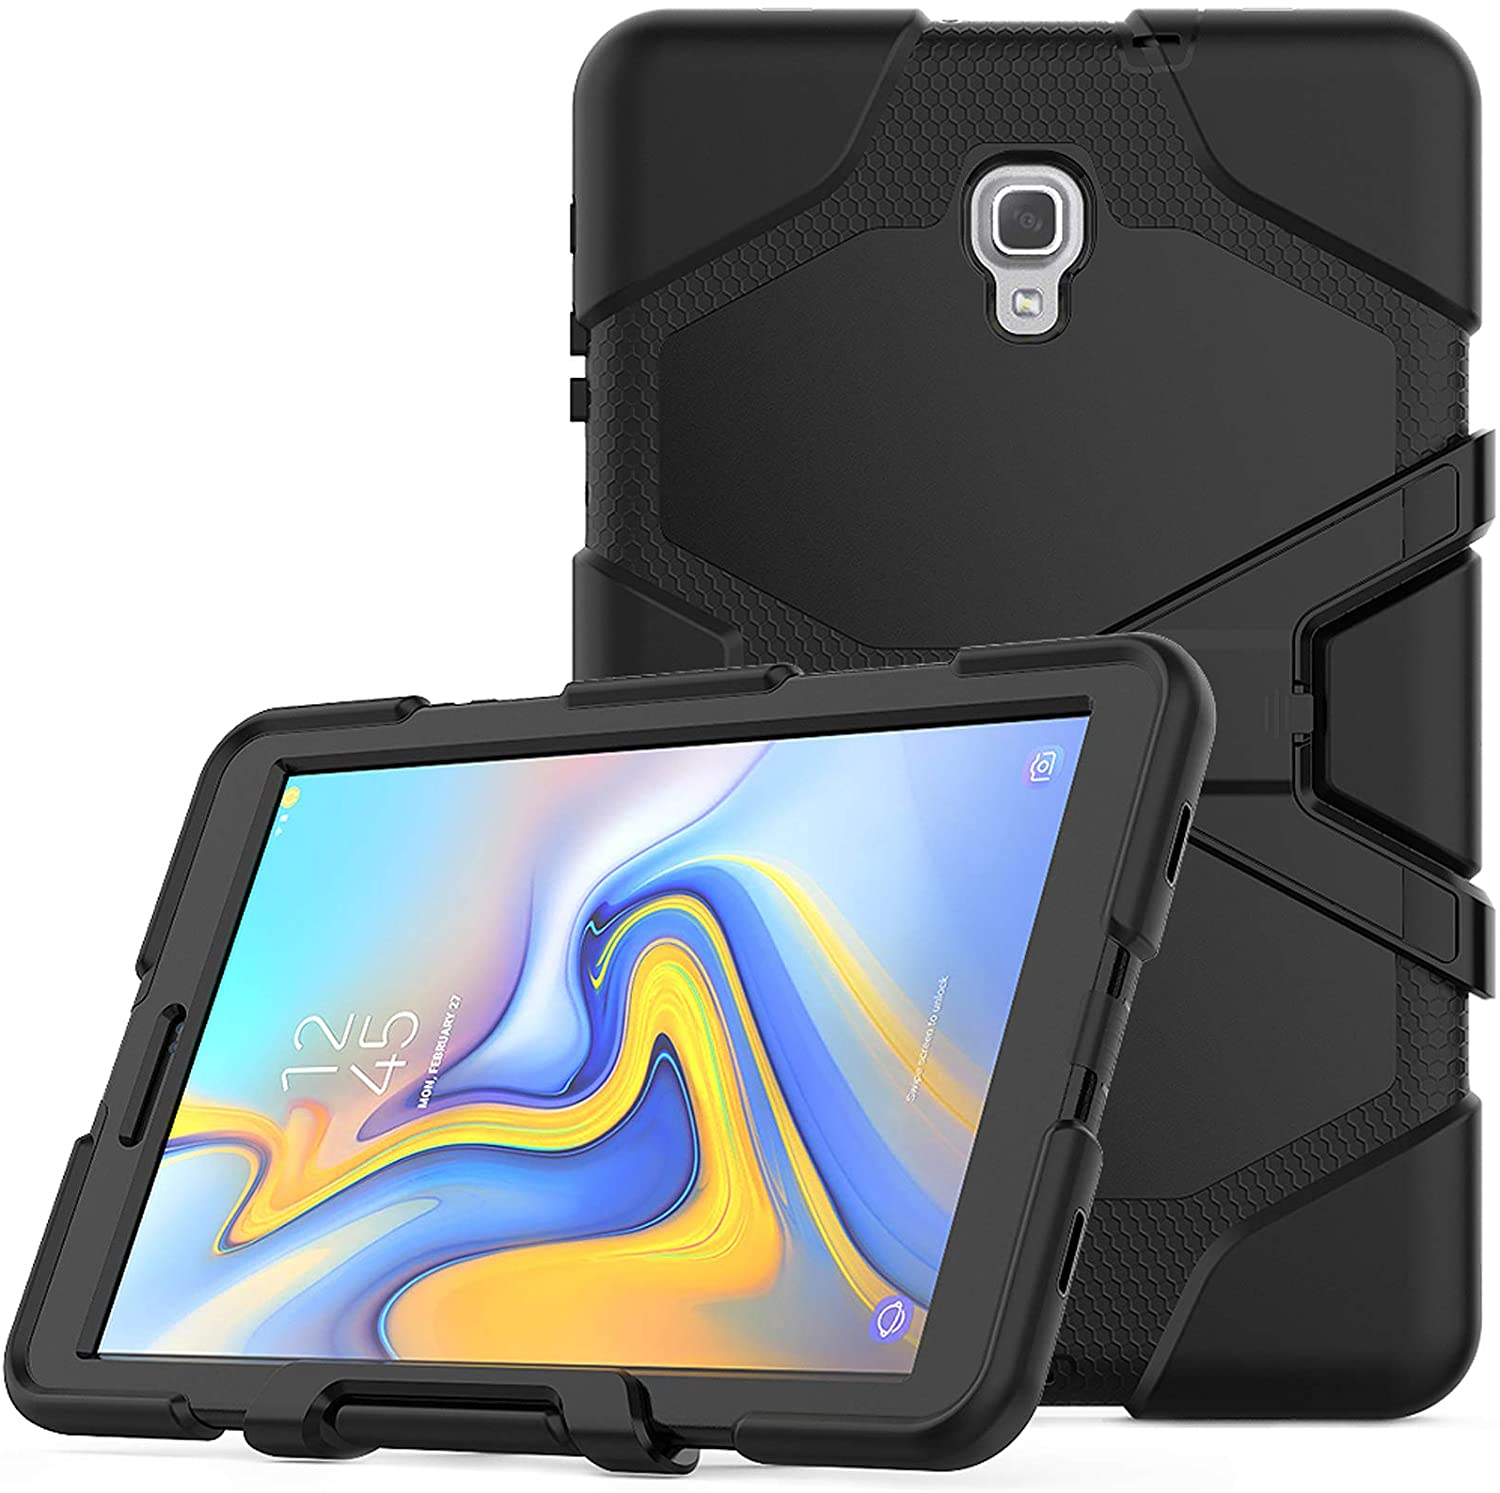 Lobwerk 3in1 Case for Samsung Galaxy Tab A 10.5 Inch SM-T590 T595 Outdoor Cover with Screen Protector + Stand Feature Black